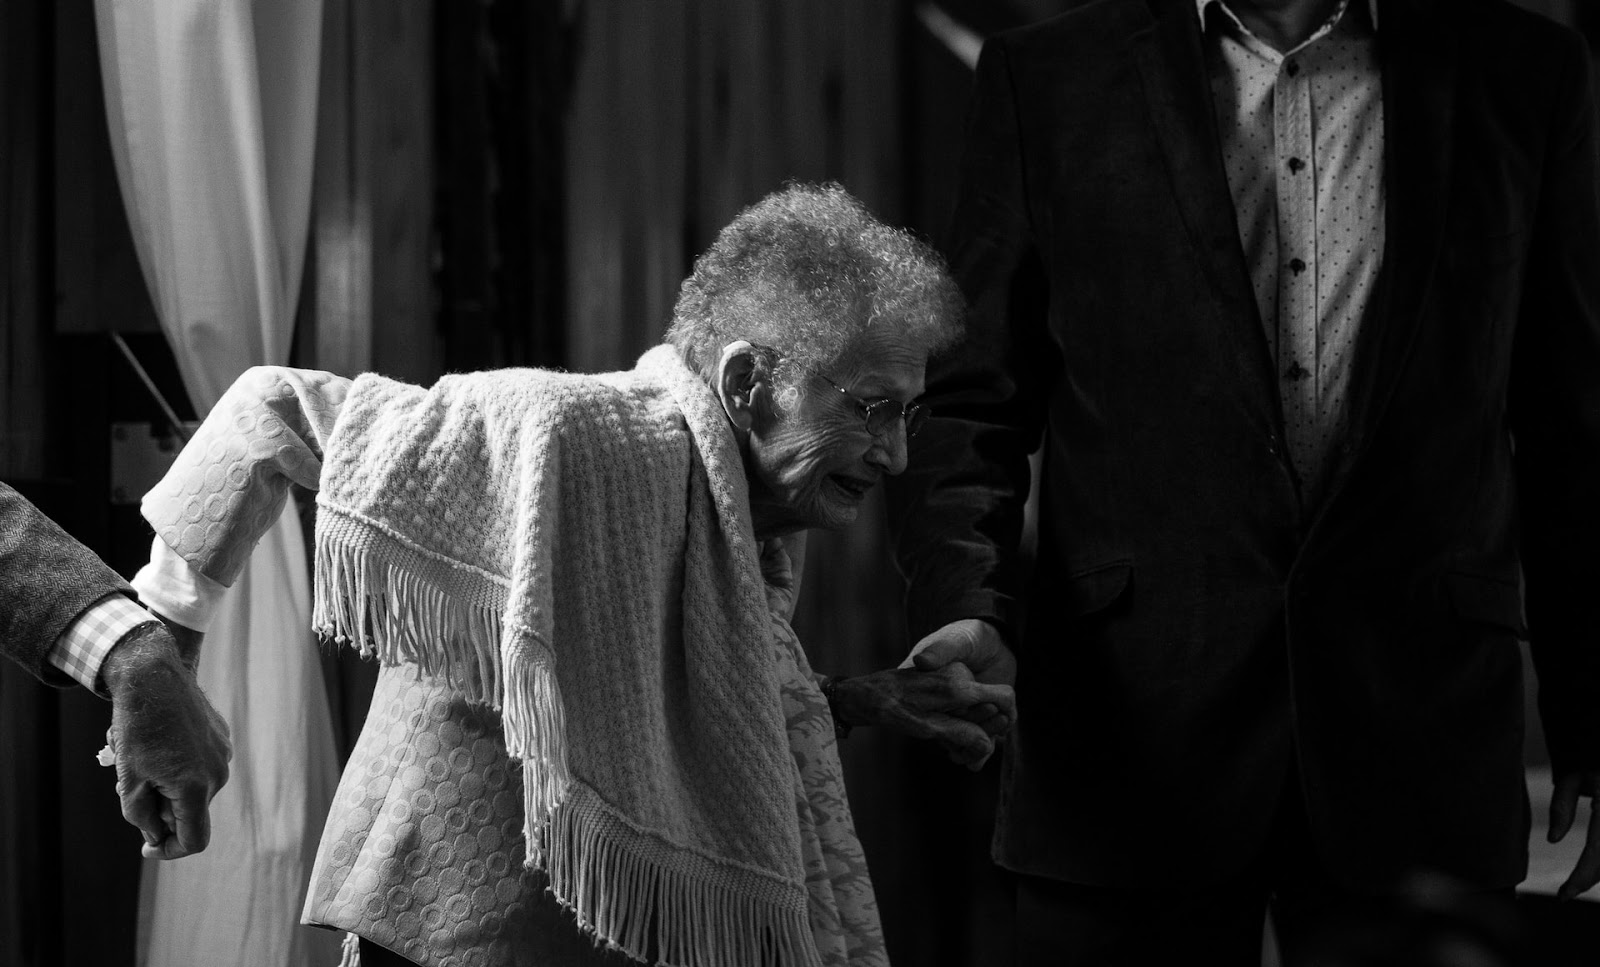 Falls in the Elderly: How to Stay Safe